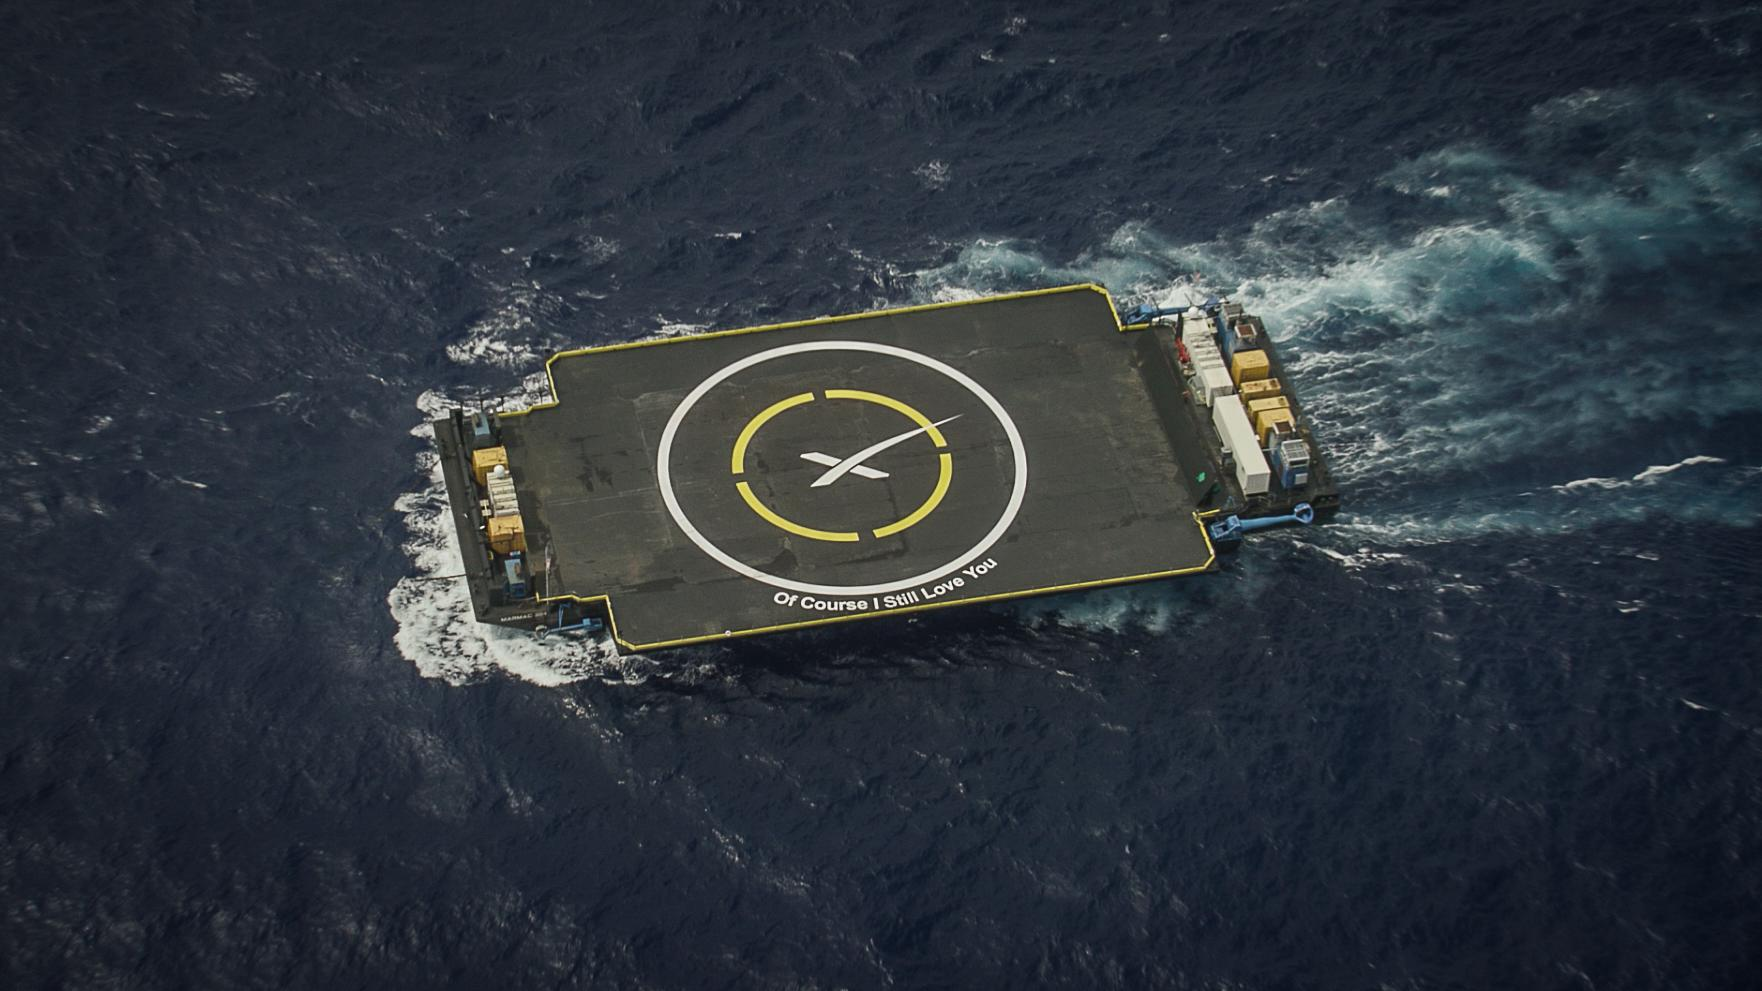 drone ship OCISLY June 2015 (SpaceX) 1